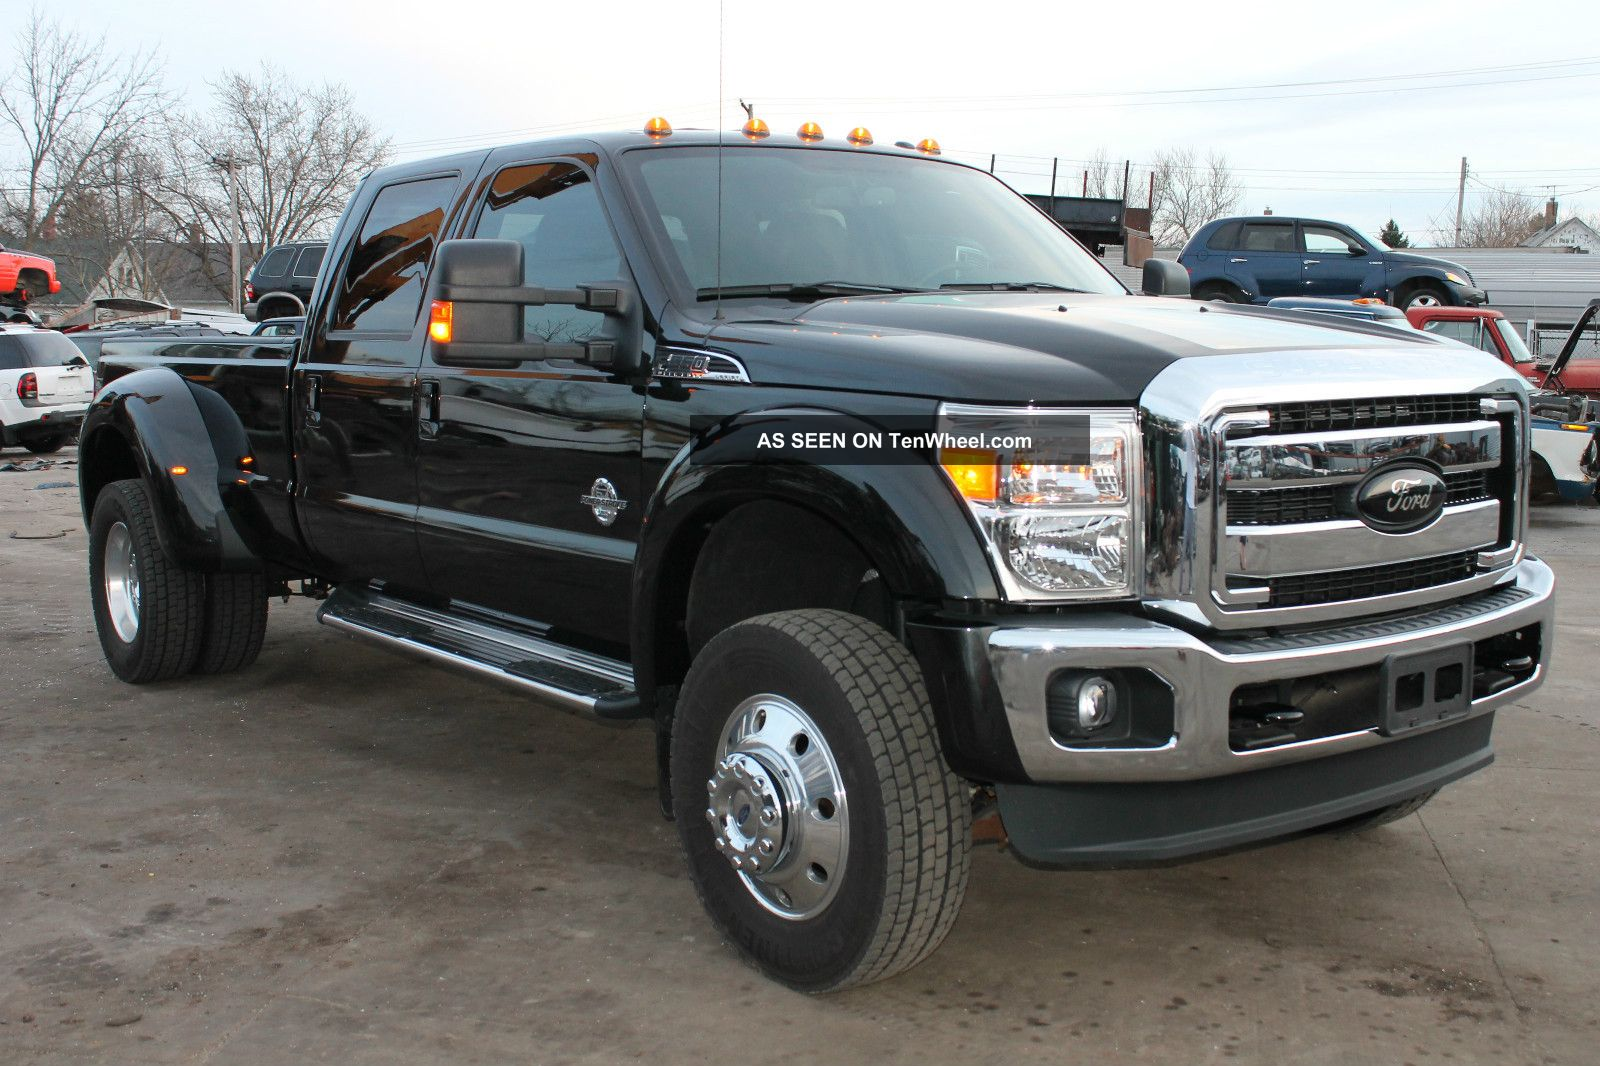 Ford F550 Photo And Video Review Comments Dump Truck Wiring Diagram